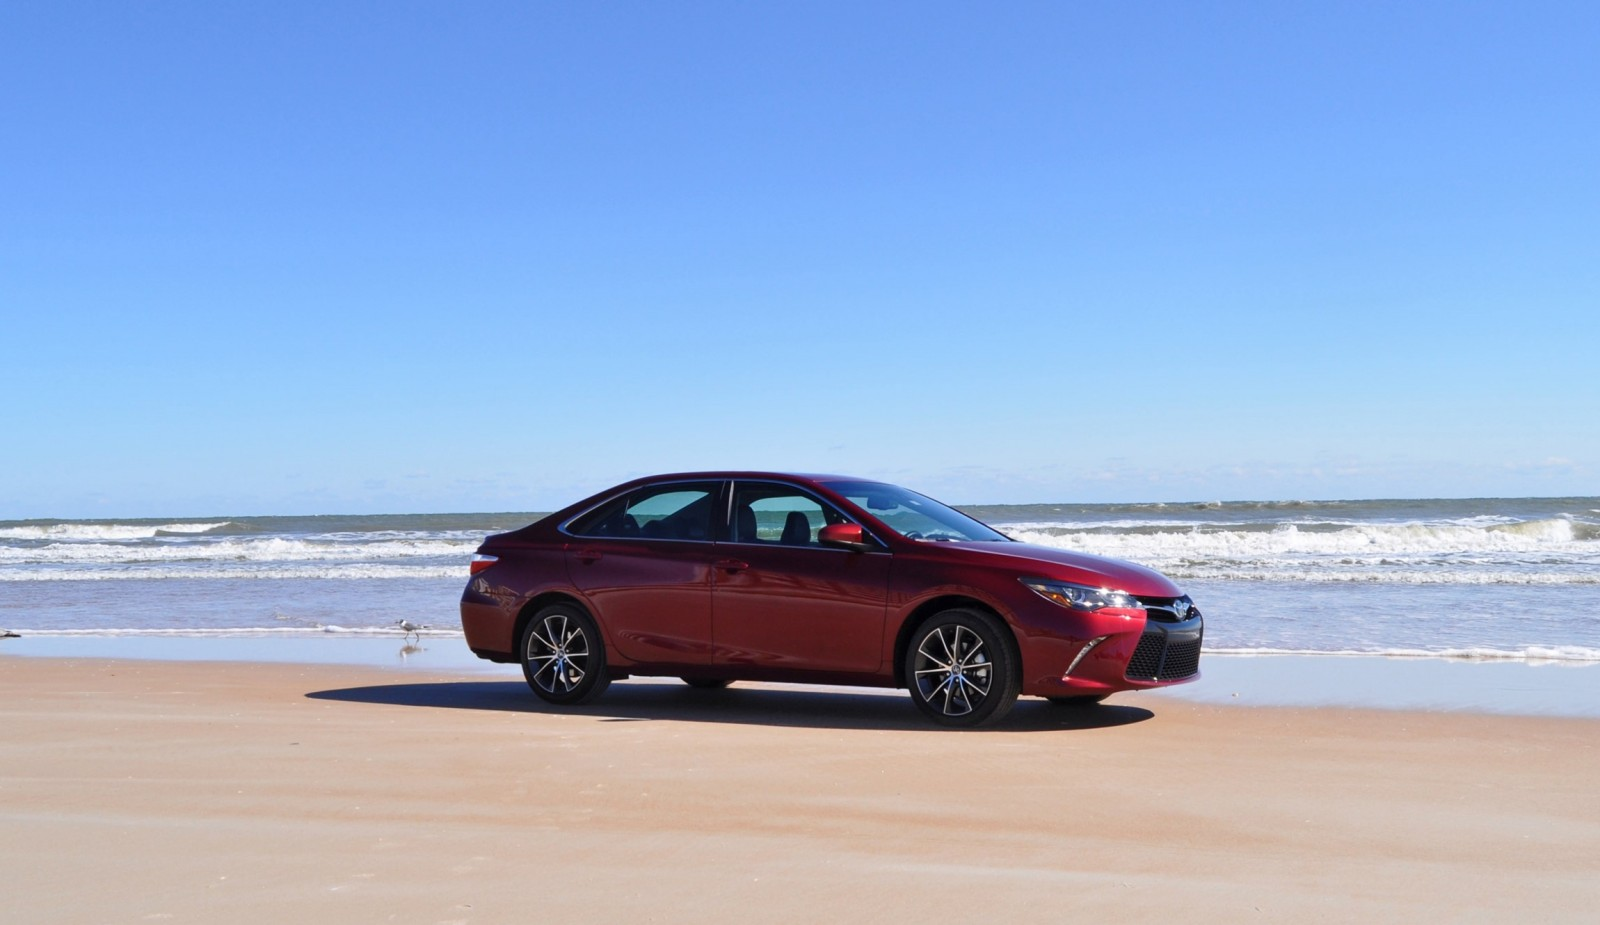 Toyota Camry Nascar Pace Car 2017 2018 Best Cars Reviews